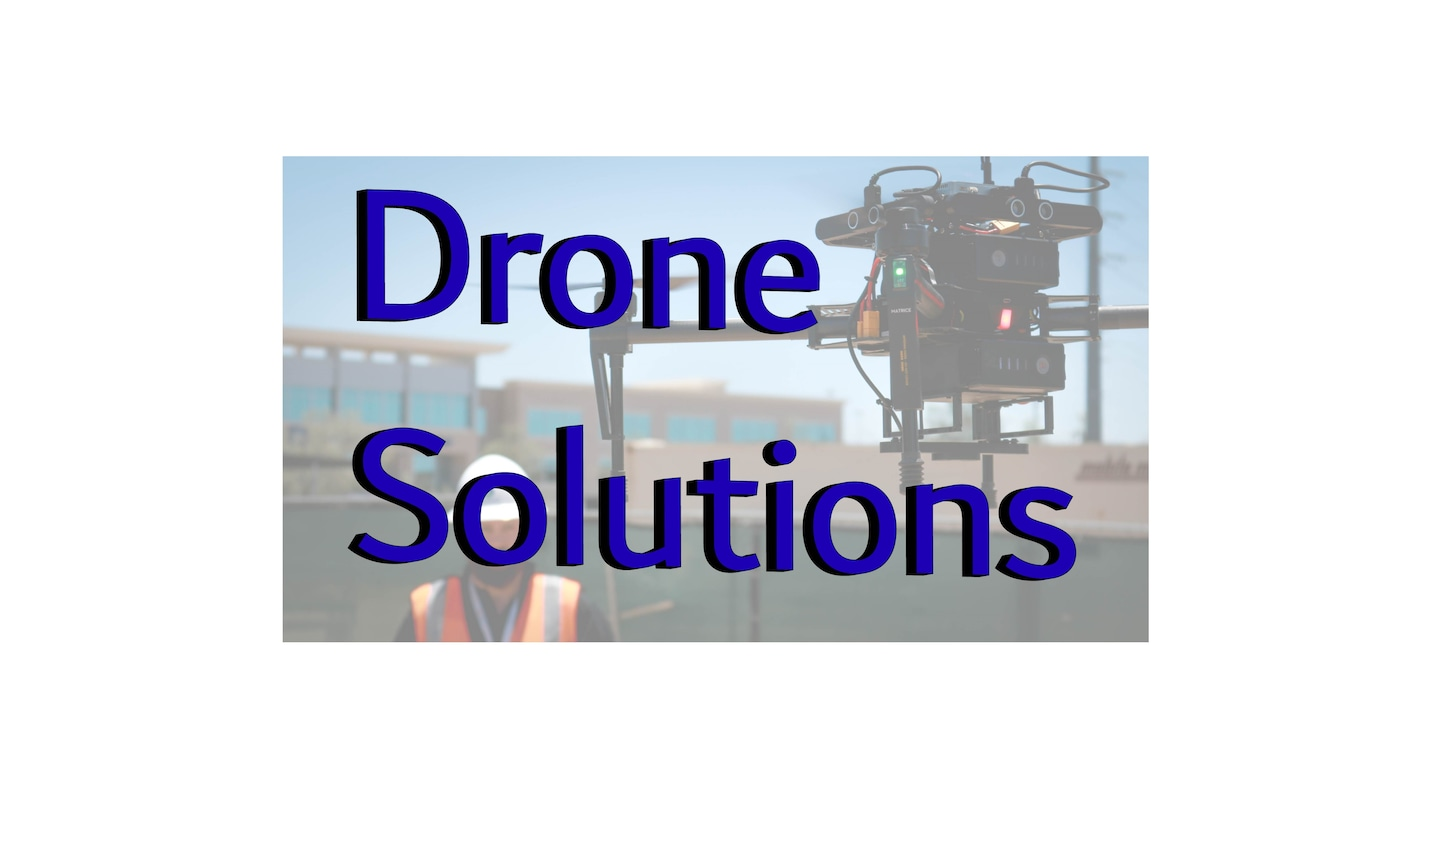 Drone Solutions & Photography